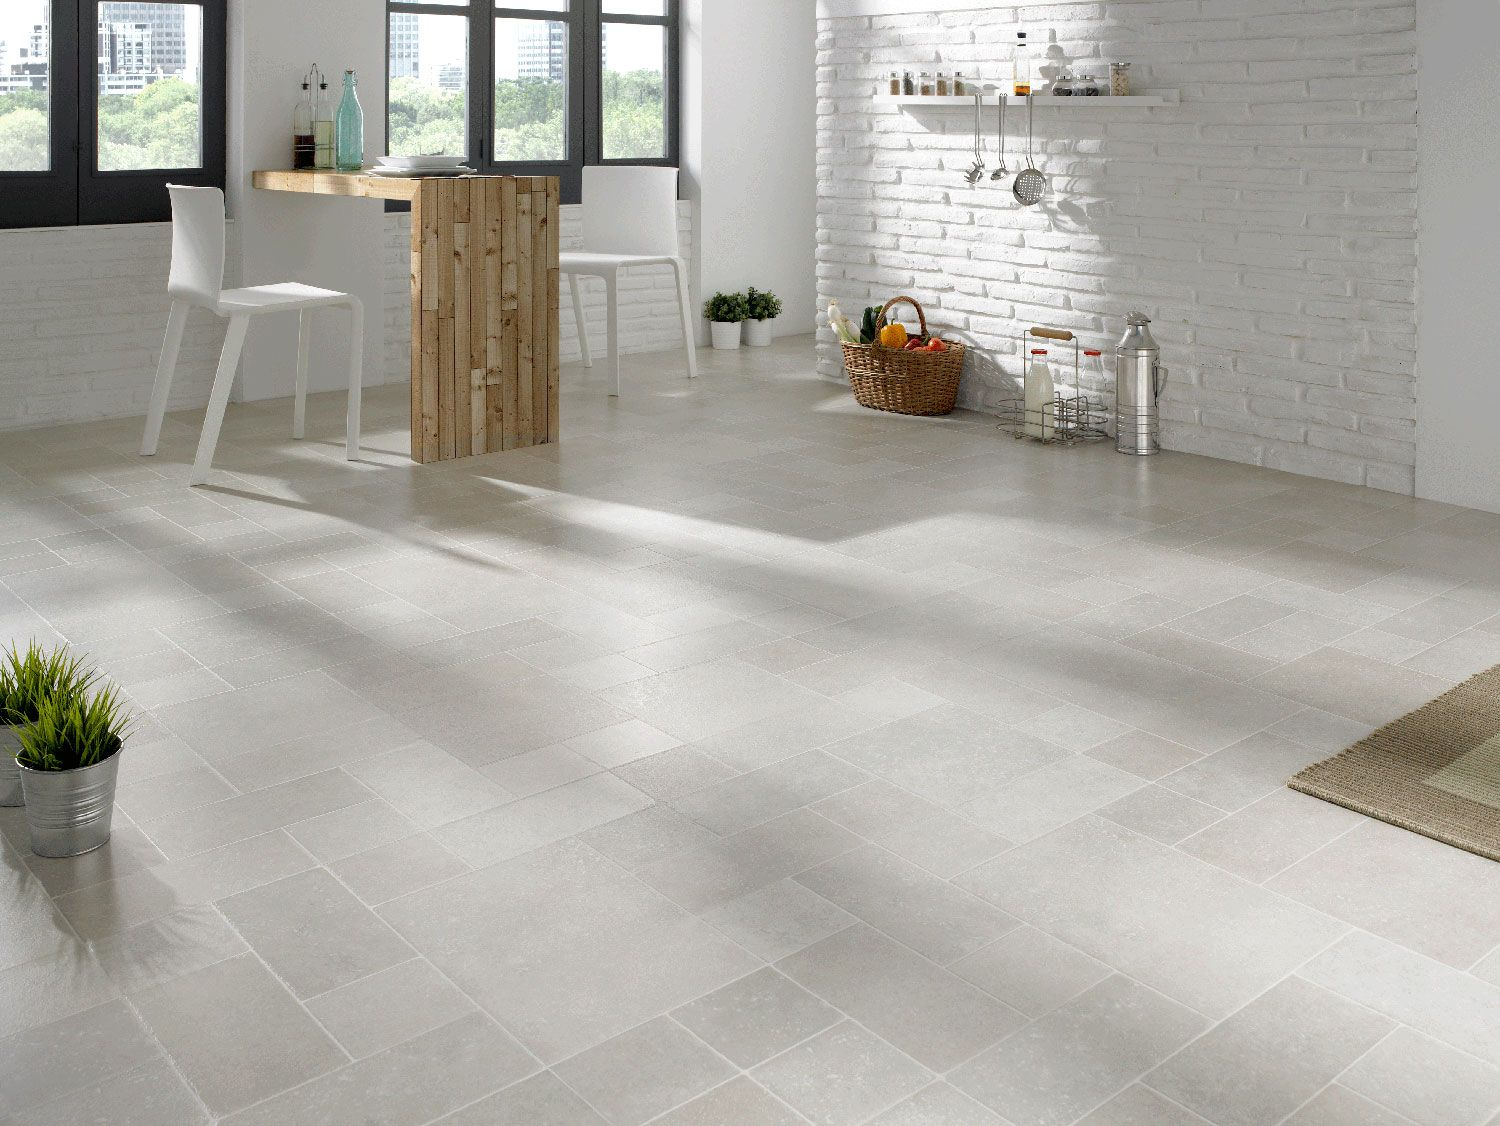 Old Fashioned Ceramic Tile Floating Floor Images - Tile Texture ...